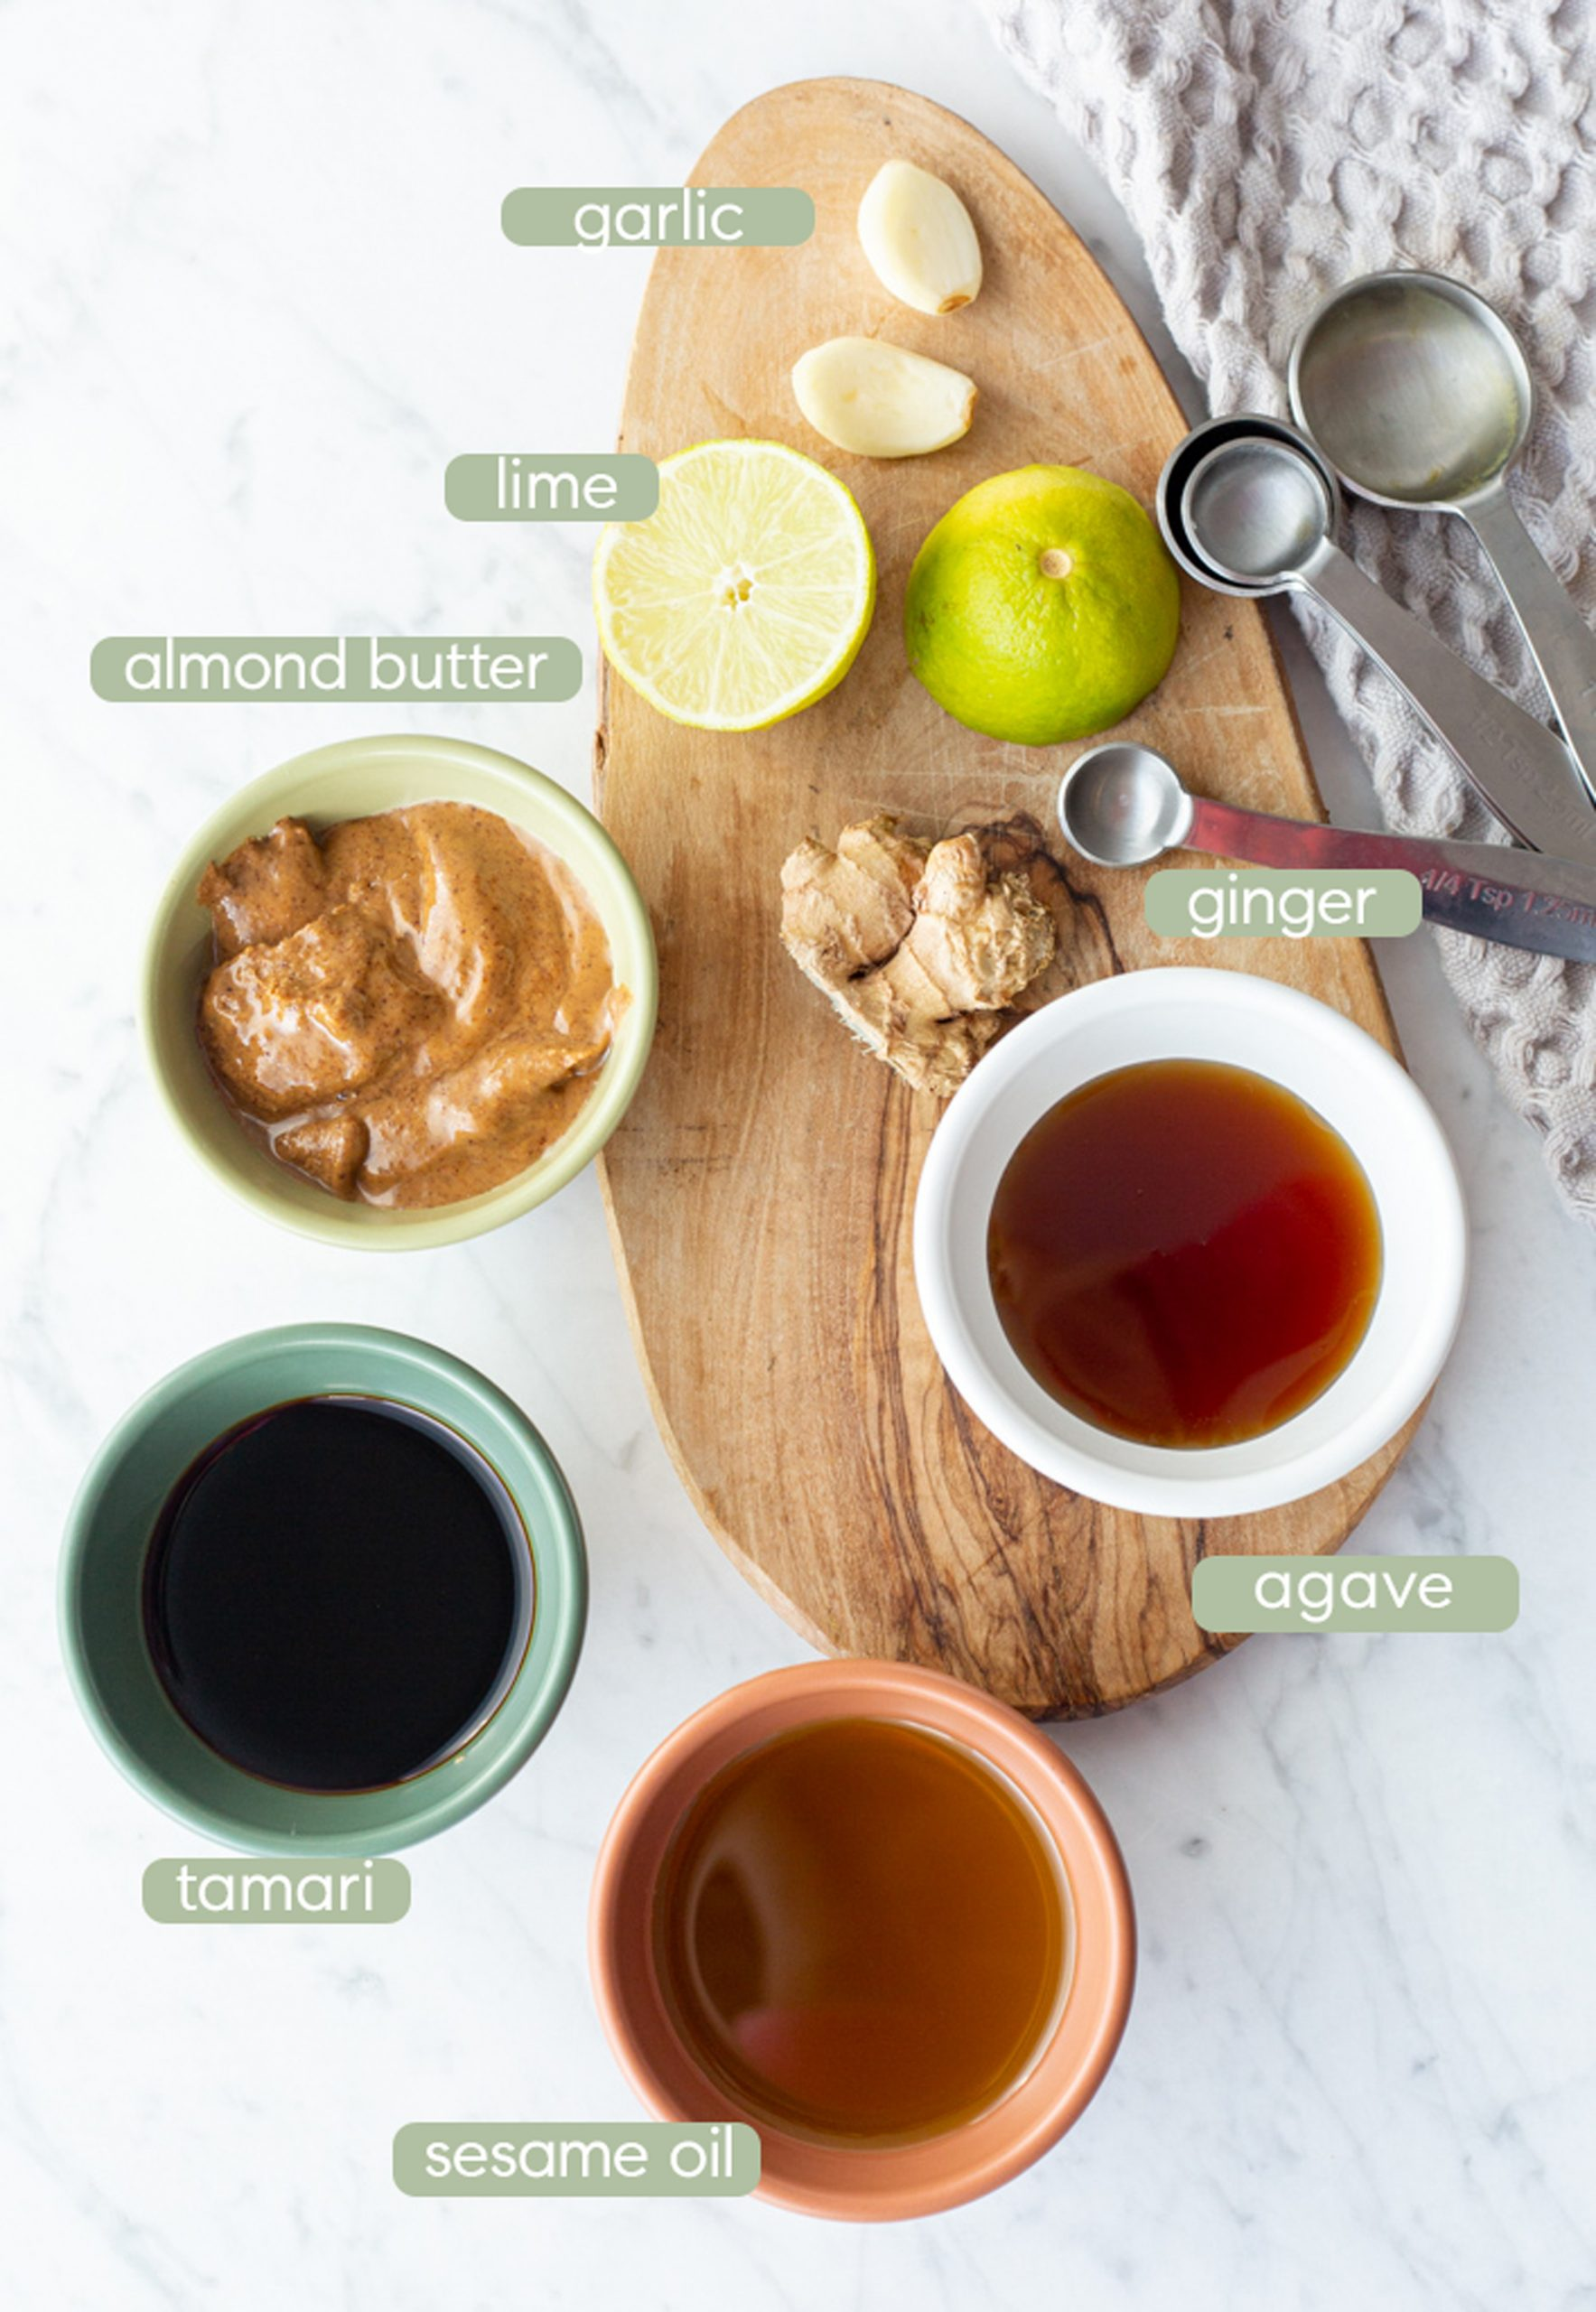 ingredients for thai almond butter dipping sauce in bowls spread on counter